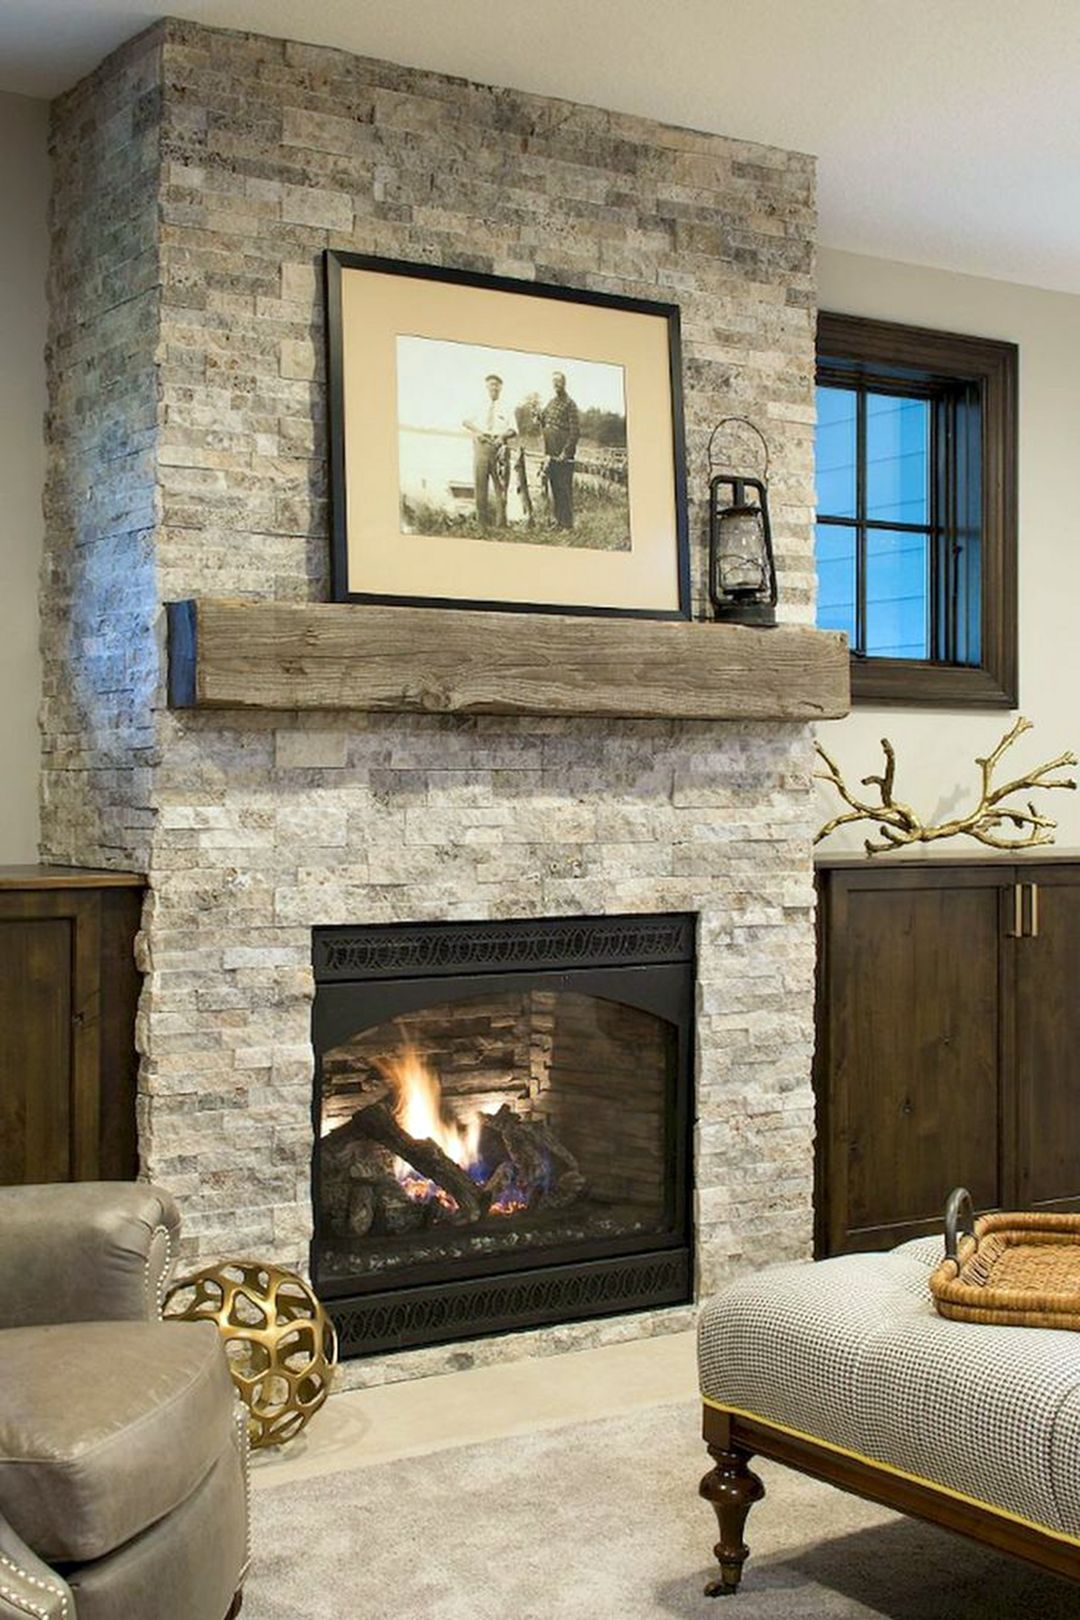 Adorable 15 Farmhouse Fireplace Mantle Decorations Ideas For Cozy Family Contemporary Fireplace Designs Fireplace Design Fireplace Hearth Decor